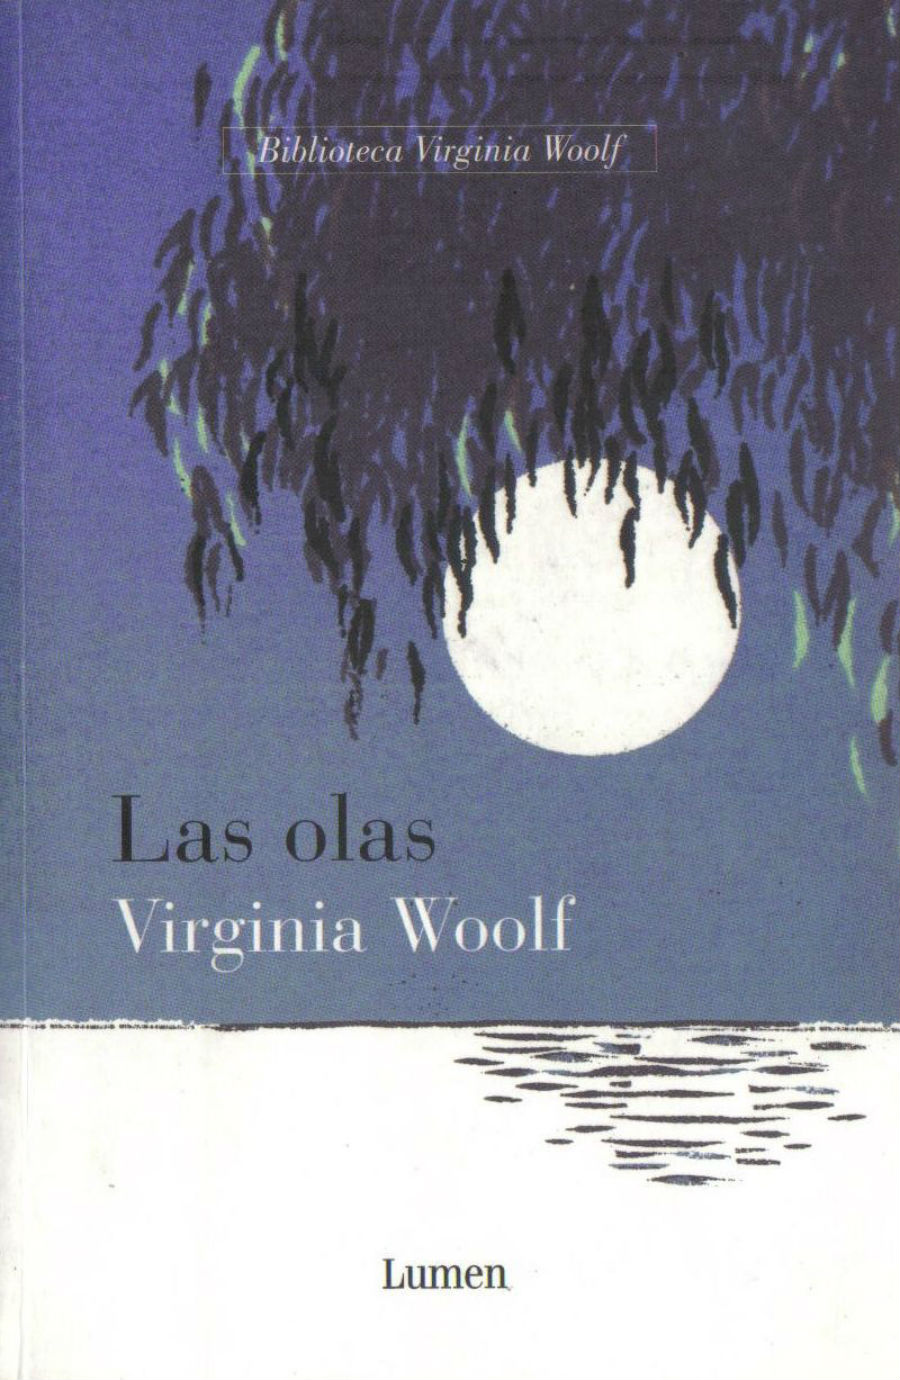 LAS HORAS de VIRGINIA WOOLF . LAS OLAS de VIRGINIA WOOLF